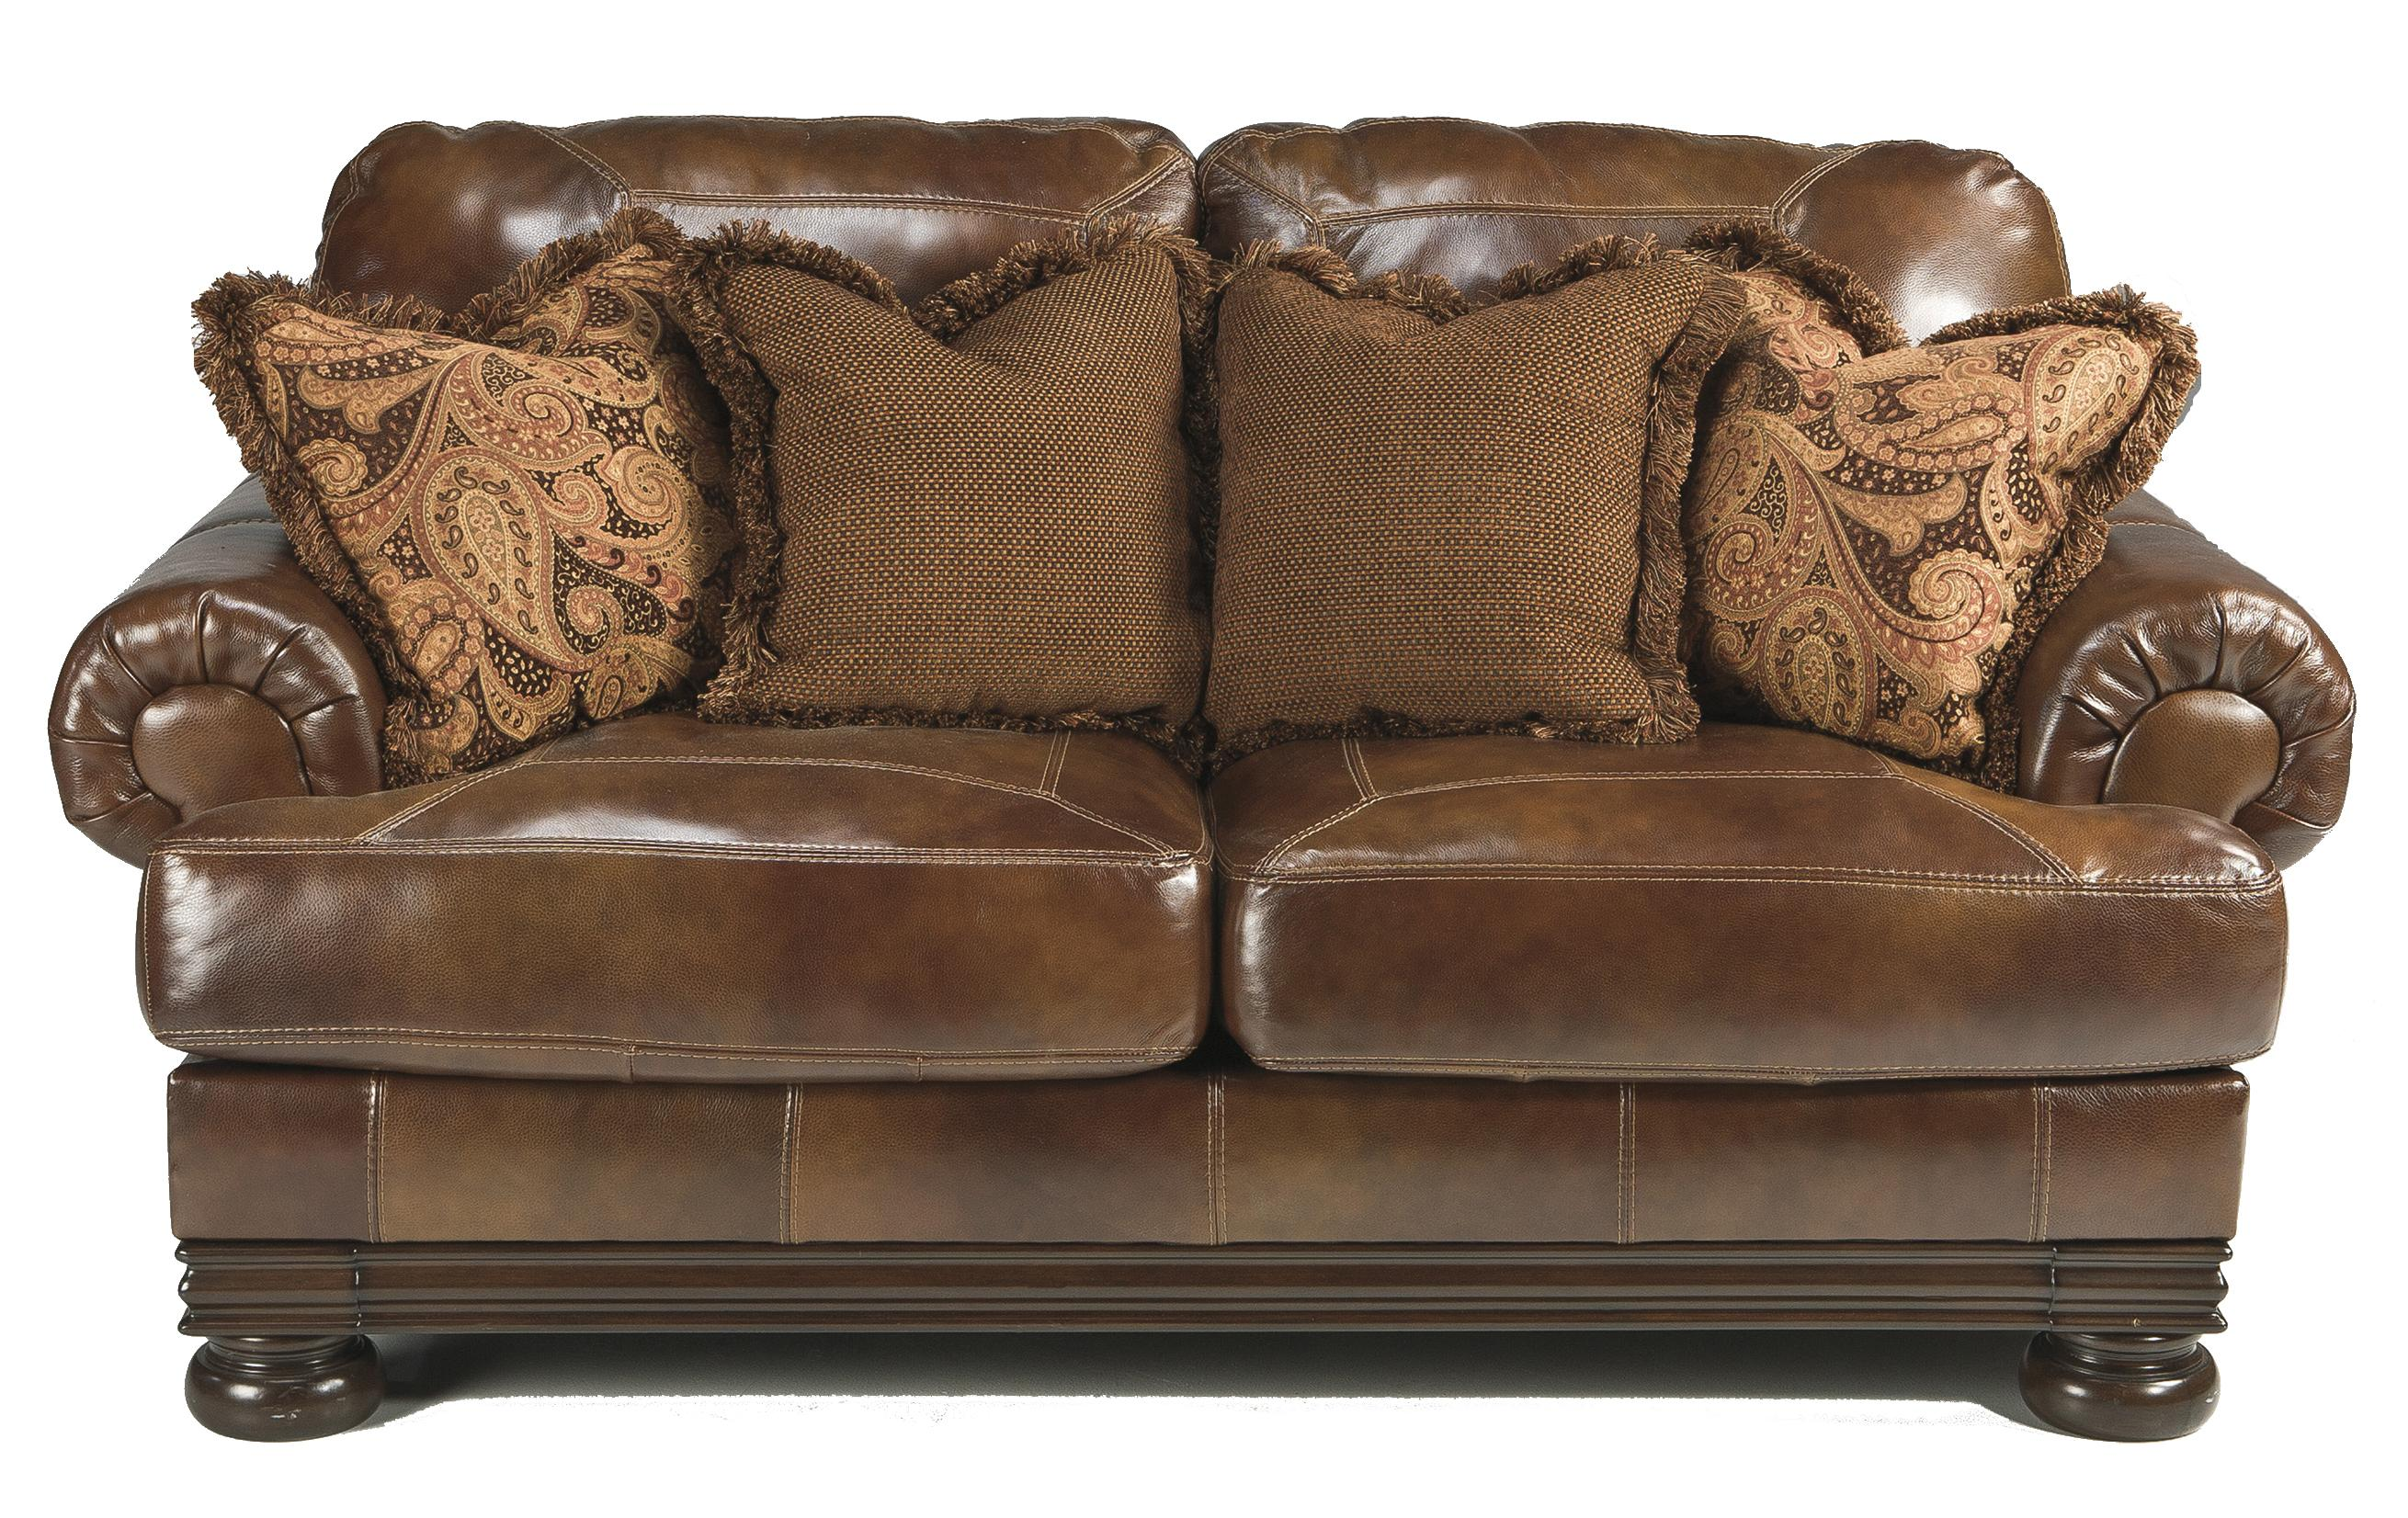 Signature Design by Ashley Hutcherson Traditional Loveseat - Item Number: 2110035